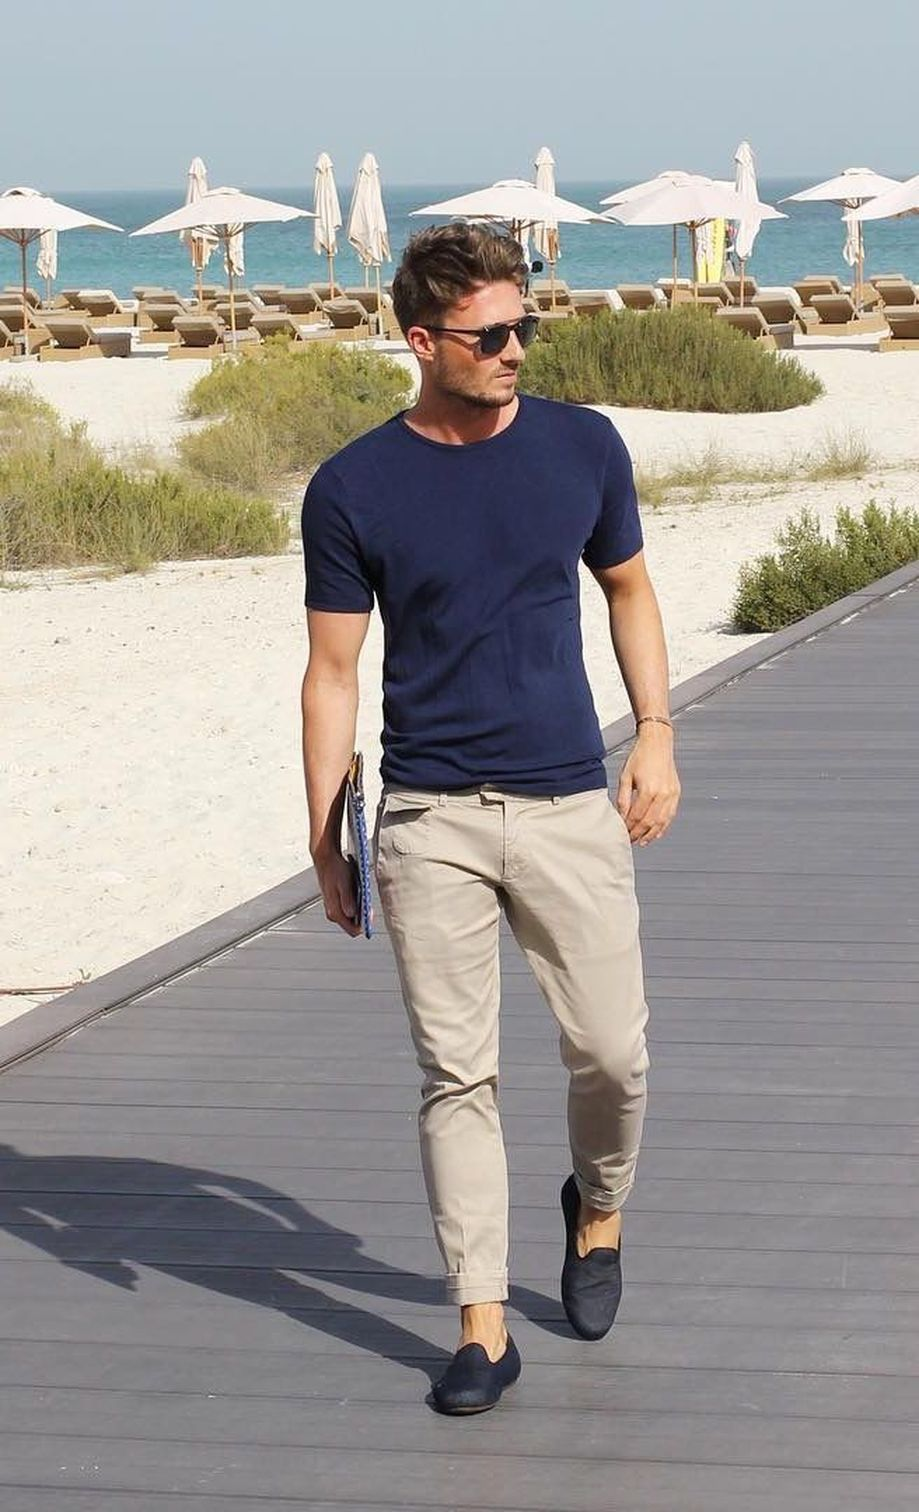 promotion most popular detailed look Cool Casual Men's Fashions Summer Outfits Ideas 55 - Fashion ...